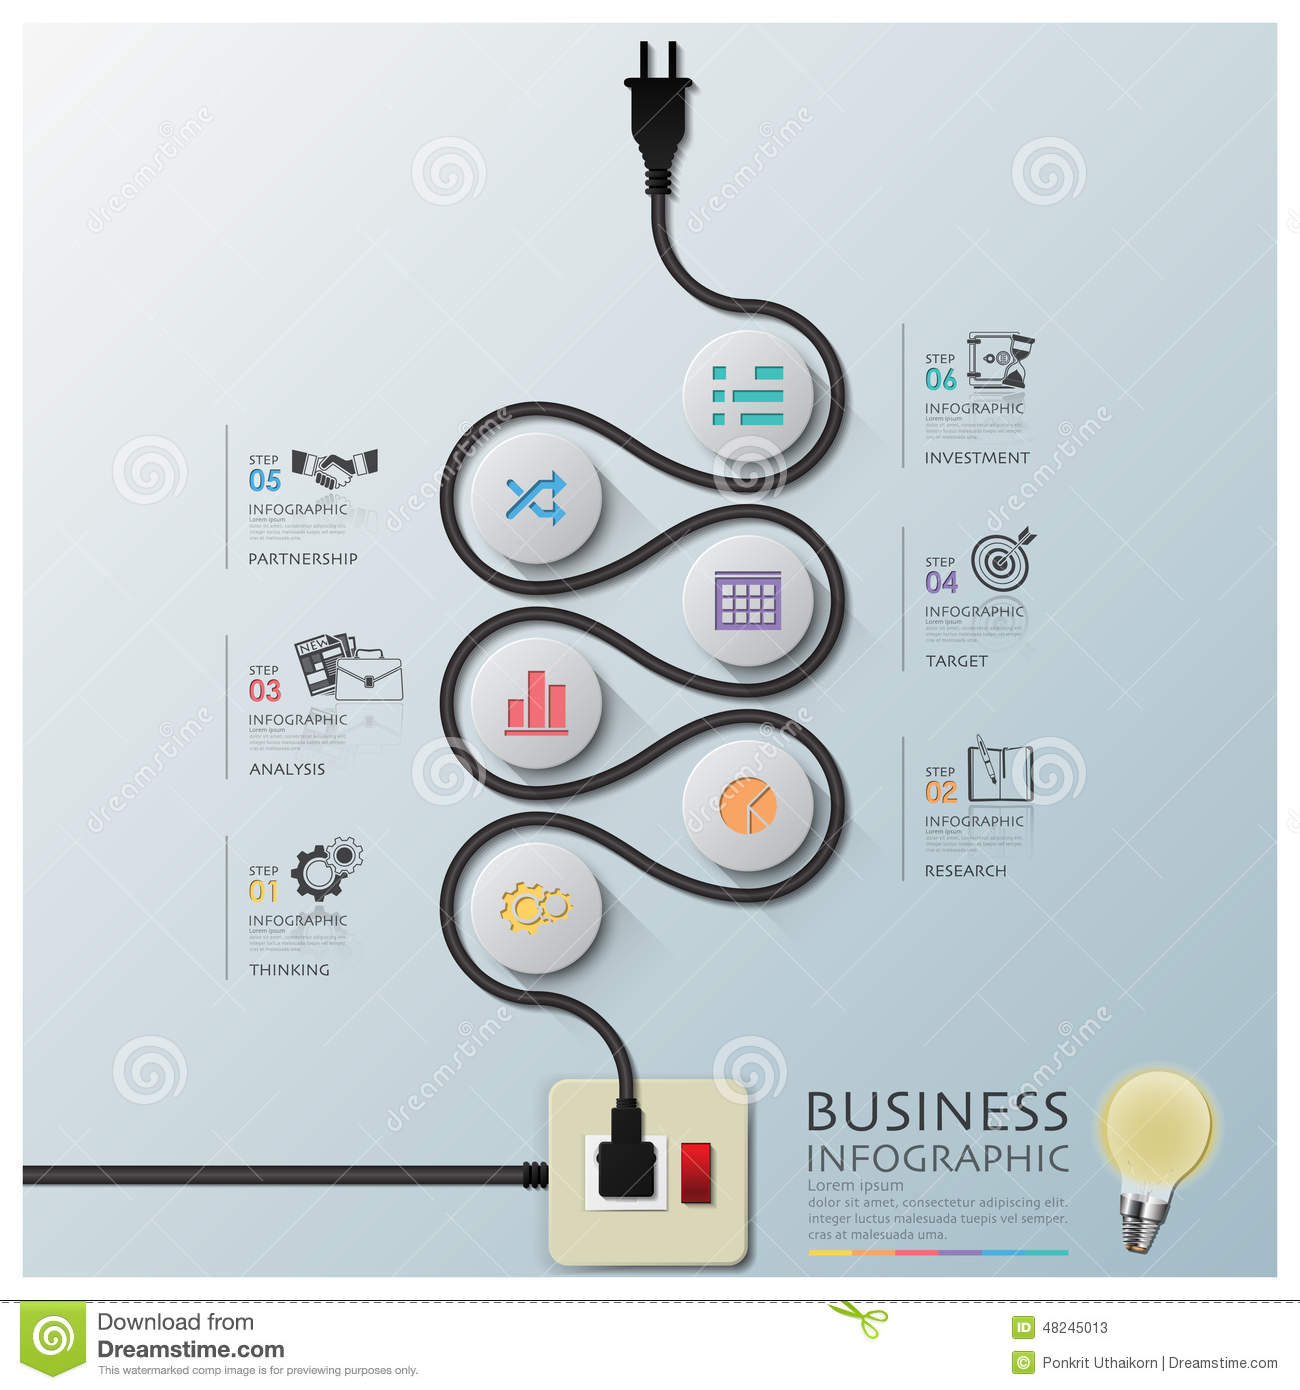 hight resolution of curve electric wire line diagram business infographic